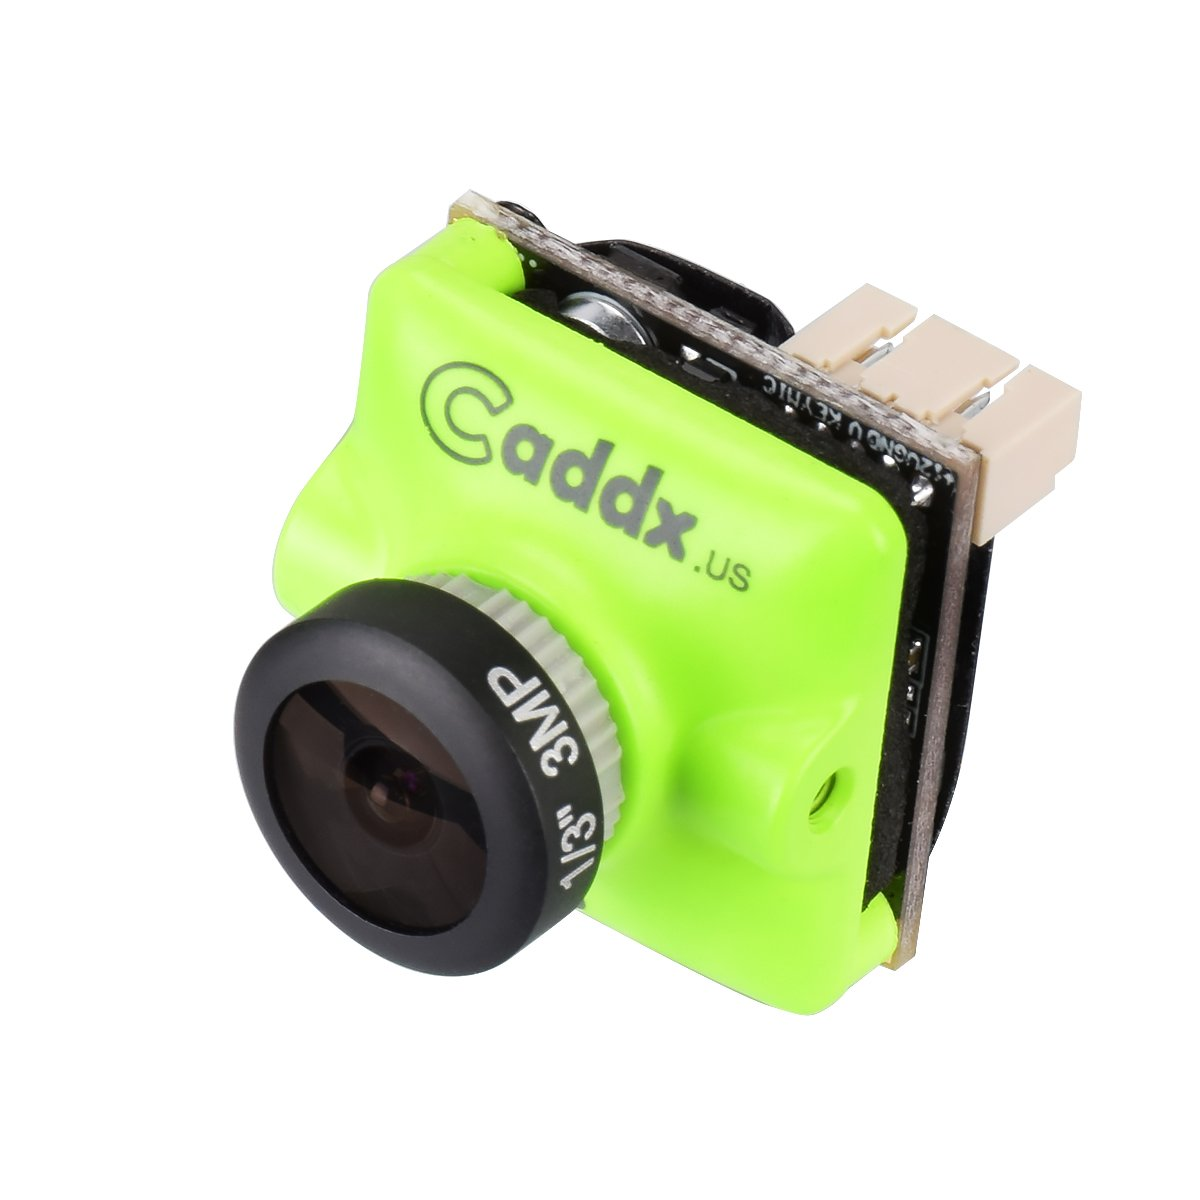 Caddx FPV Camera Turbo Micro F2 1200TVL 2.1mm Cam 1/3' CMOS 16:9 NTSC PAL Switchable 2.1mm IR Blocked Green for FPV Racing Drone